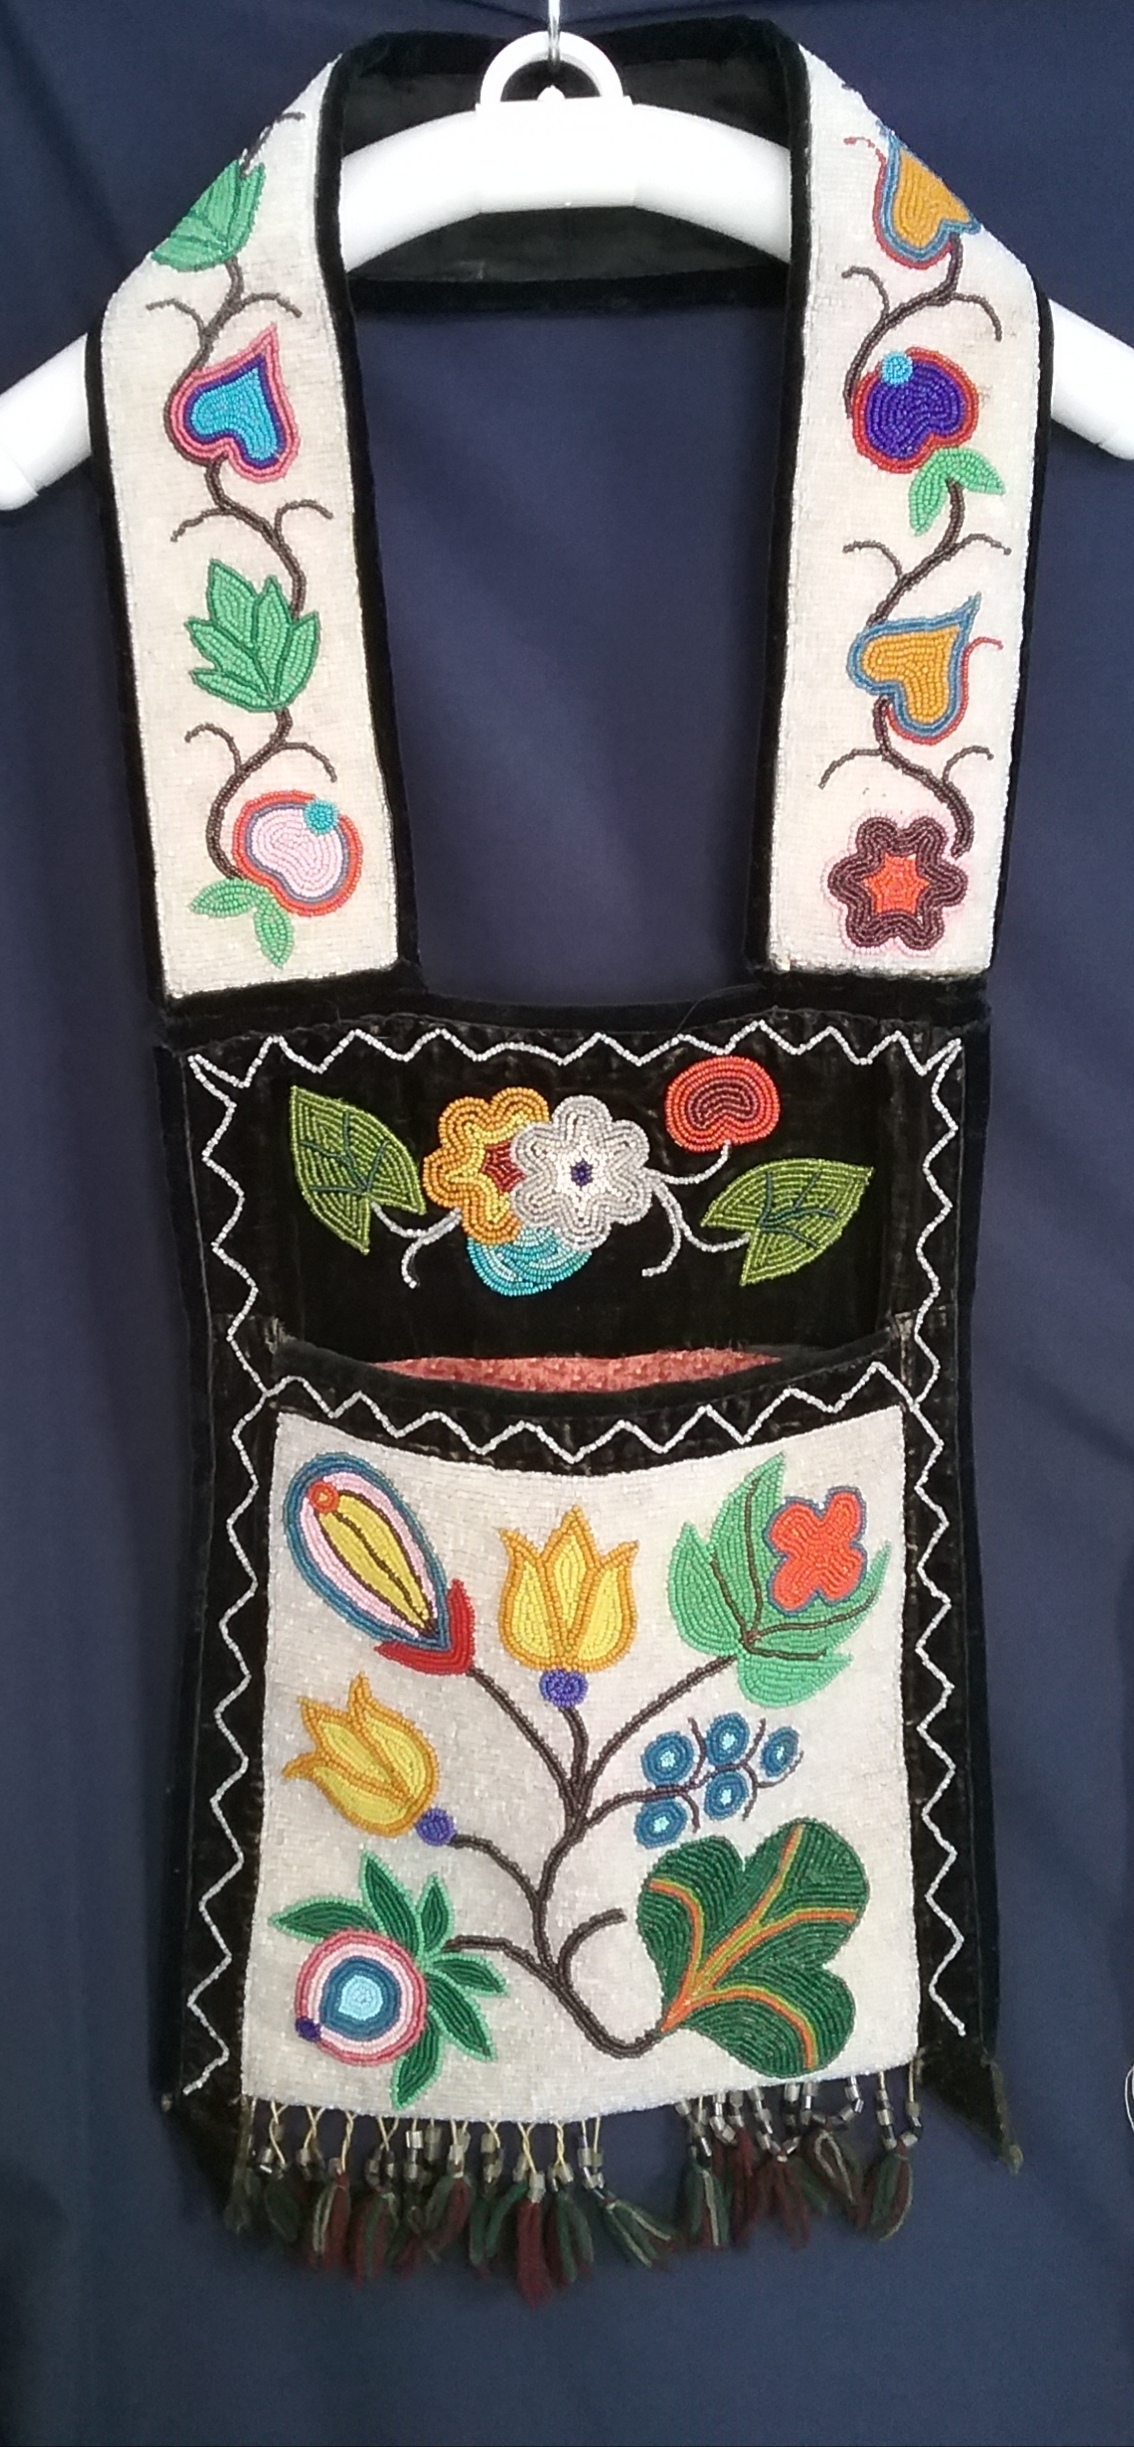 Small Ojibwe Gashkibidaagan: This Ojibwe gashkibidaagan (bandolier bag) was purchased by Upsala resident Jean Martinson at a garage sale in Mispah, Minnesota. She paid a quarter for it. The bag was originally taken as payment for a grocery store bill in the Turtle Mountains of North Dakota. Jean owned the bag for 20 years before donating it to the museum in 1996. The beadwork is spot-stitch applique. Note the floral motif and that the pattern from one side of the strap to the other is not identical. Based on the design, this bag was likely produced by someone in the White Earth Band. MCHS collections, #1996.36.3.